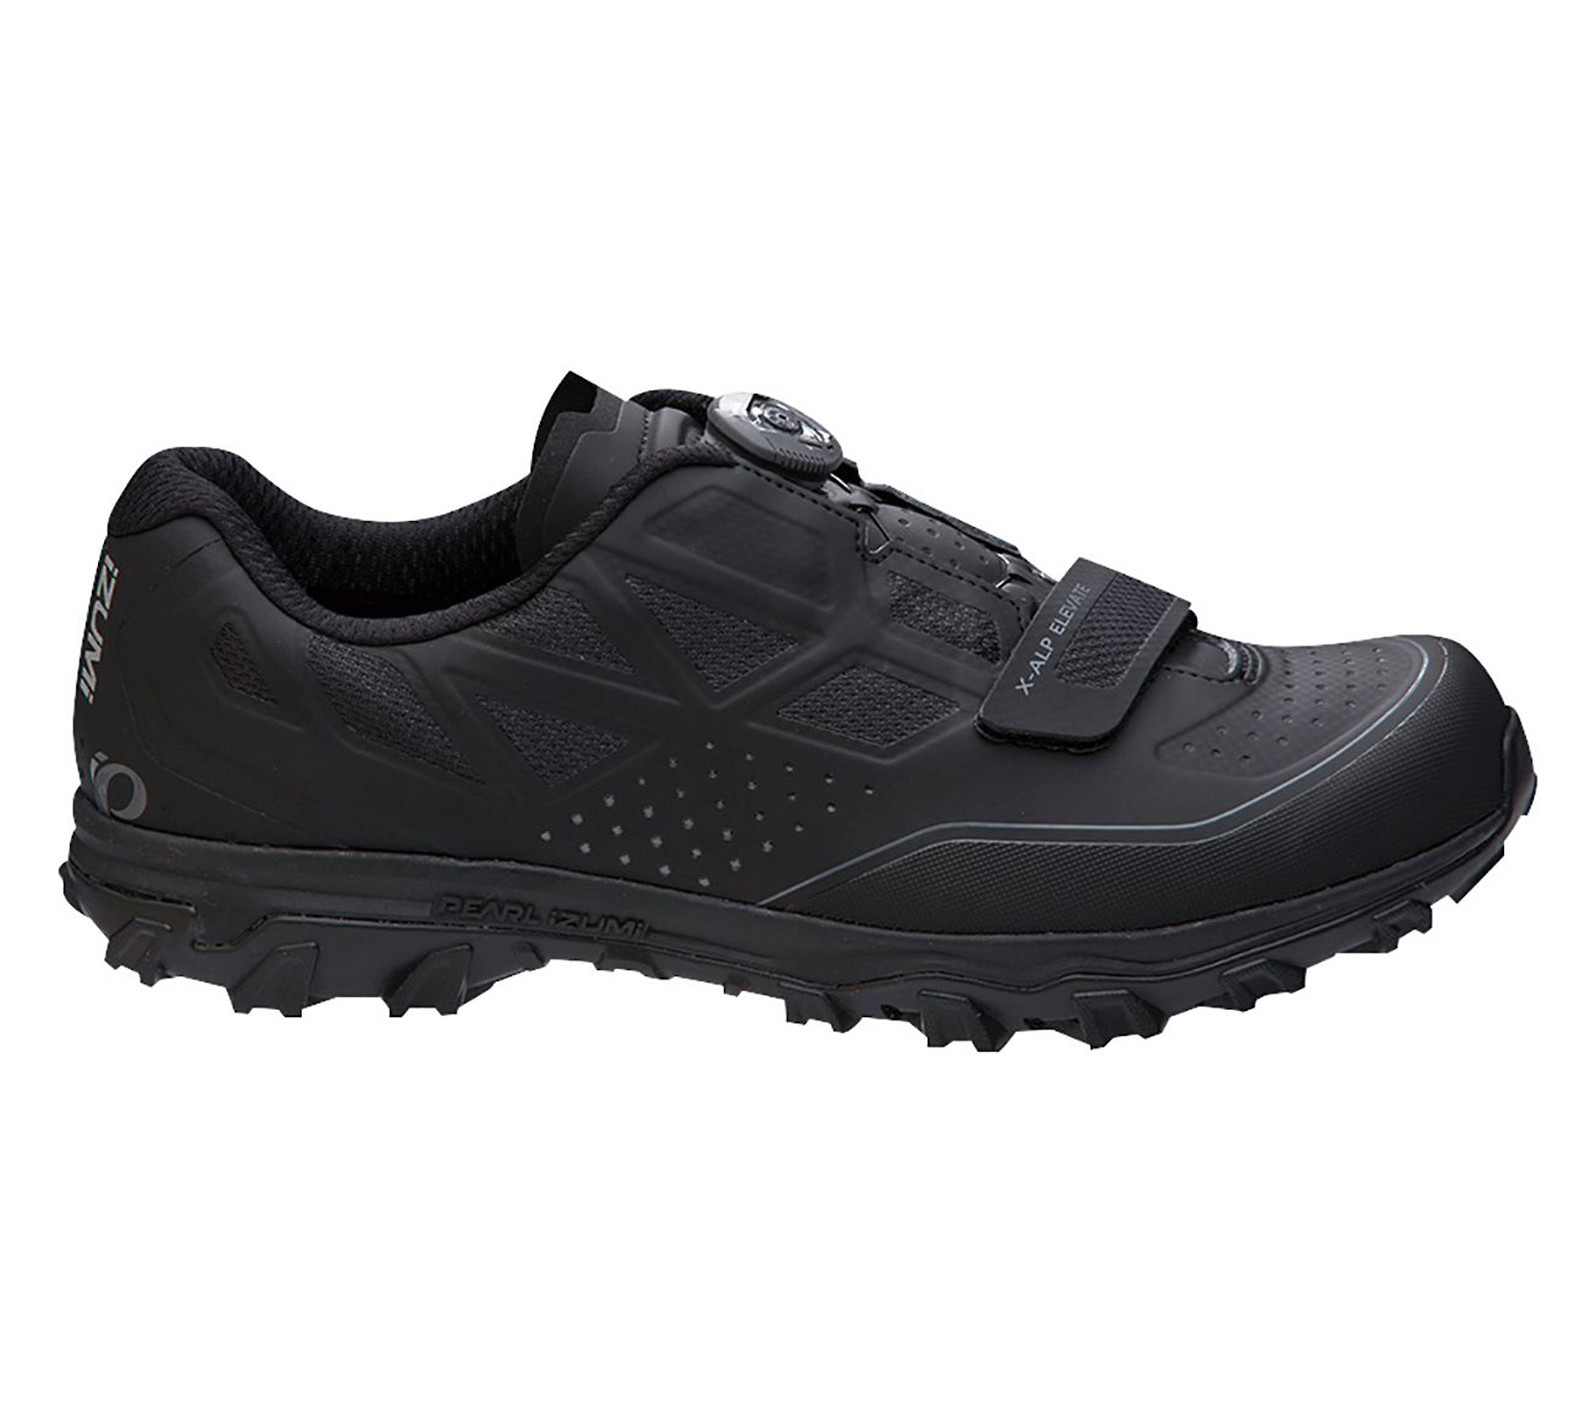 Pearl Izumi X-ALP Elevate men's shoe in black/black